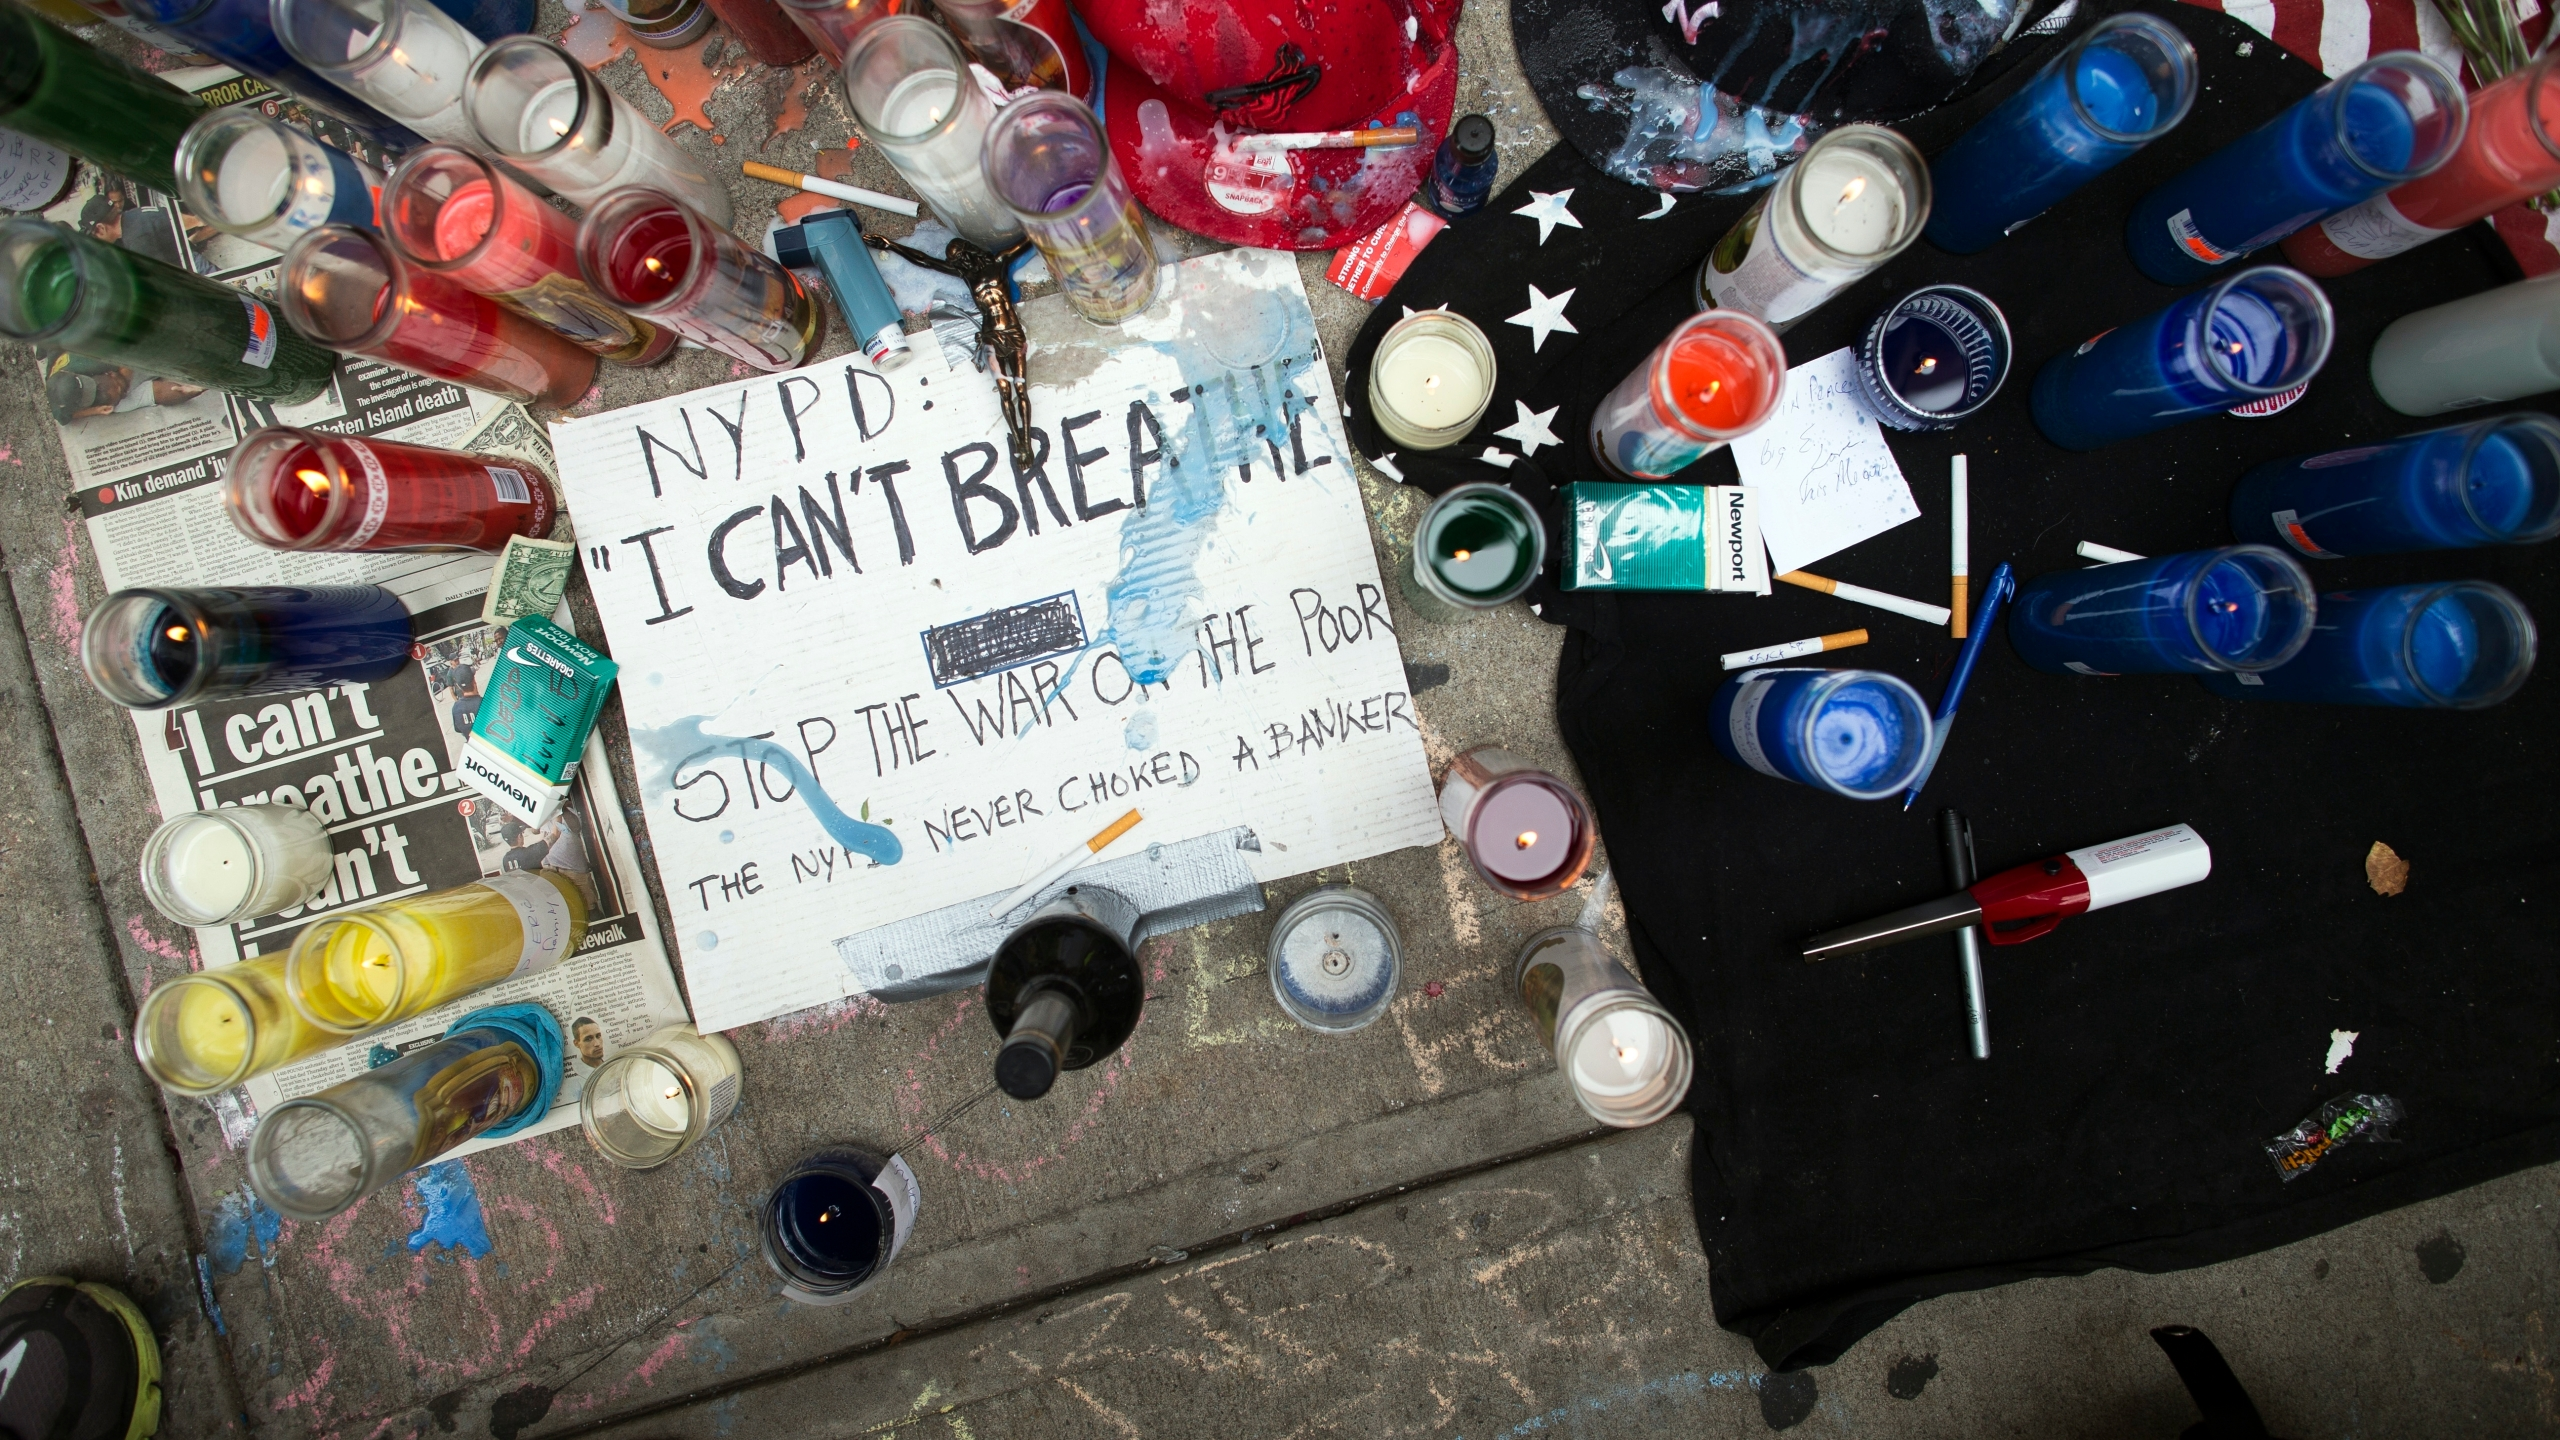 A memorial for Eric Garner rests on the pavement near the site of his death in Staten Island on Saturday, July 19, 2014. (AP/John Minchillo)